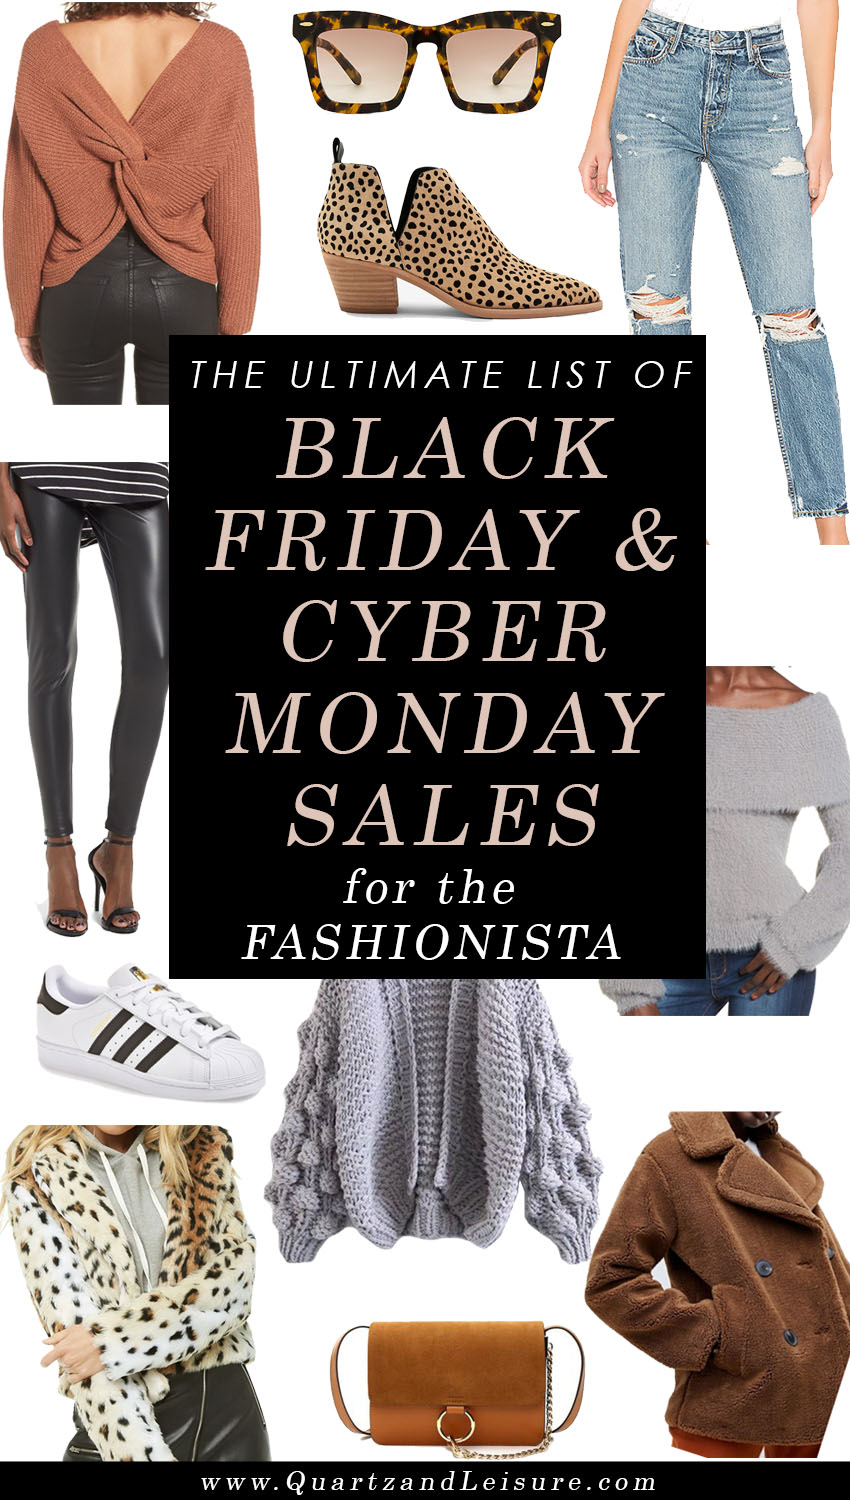 The Ultimate List of Black Friday Sales 2018